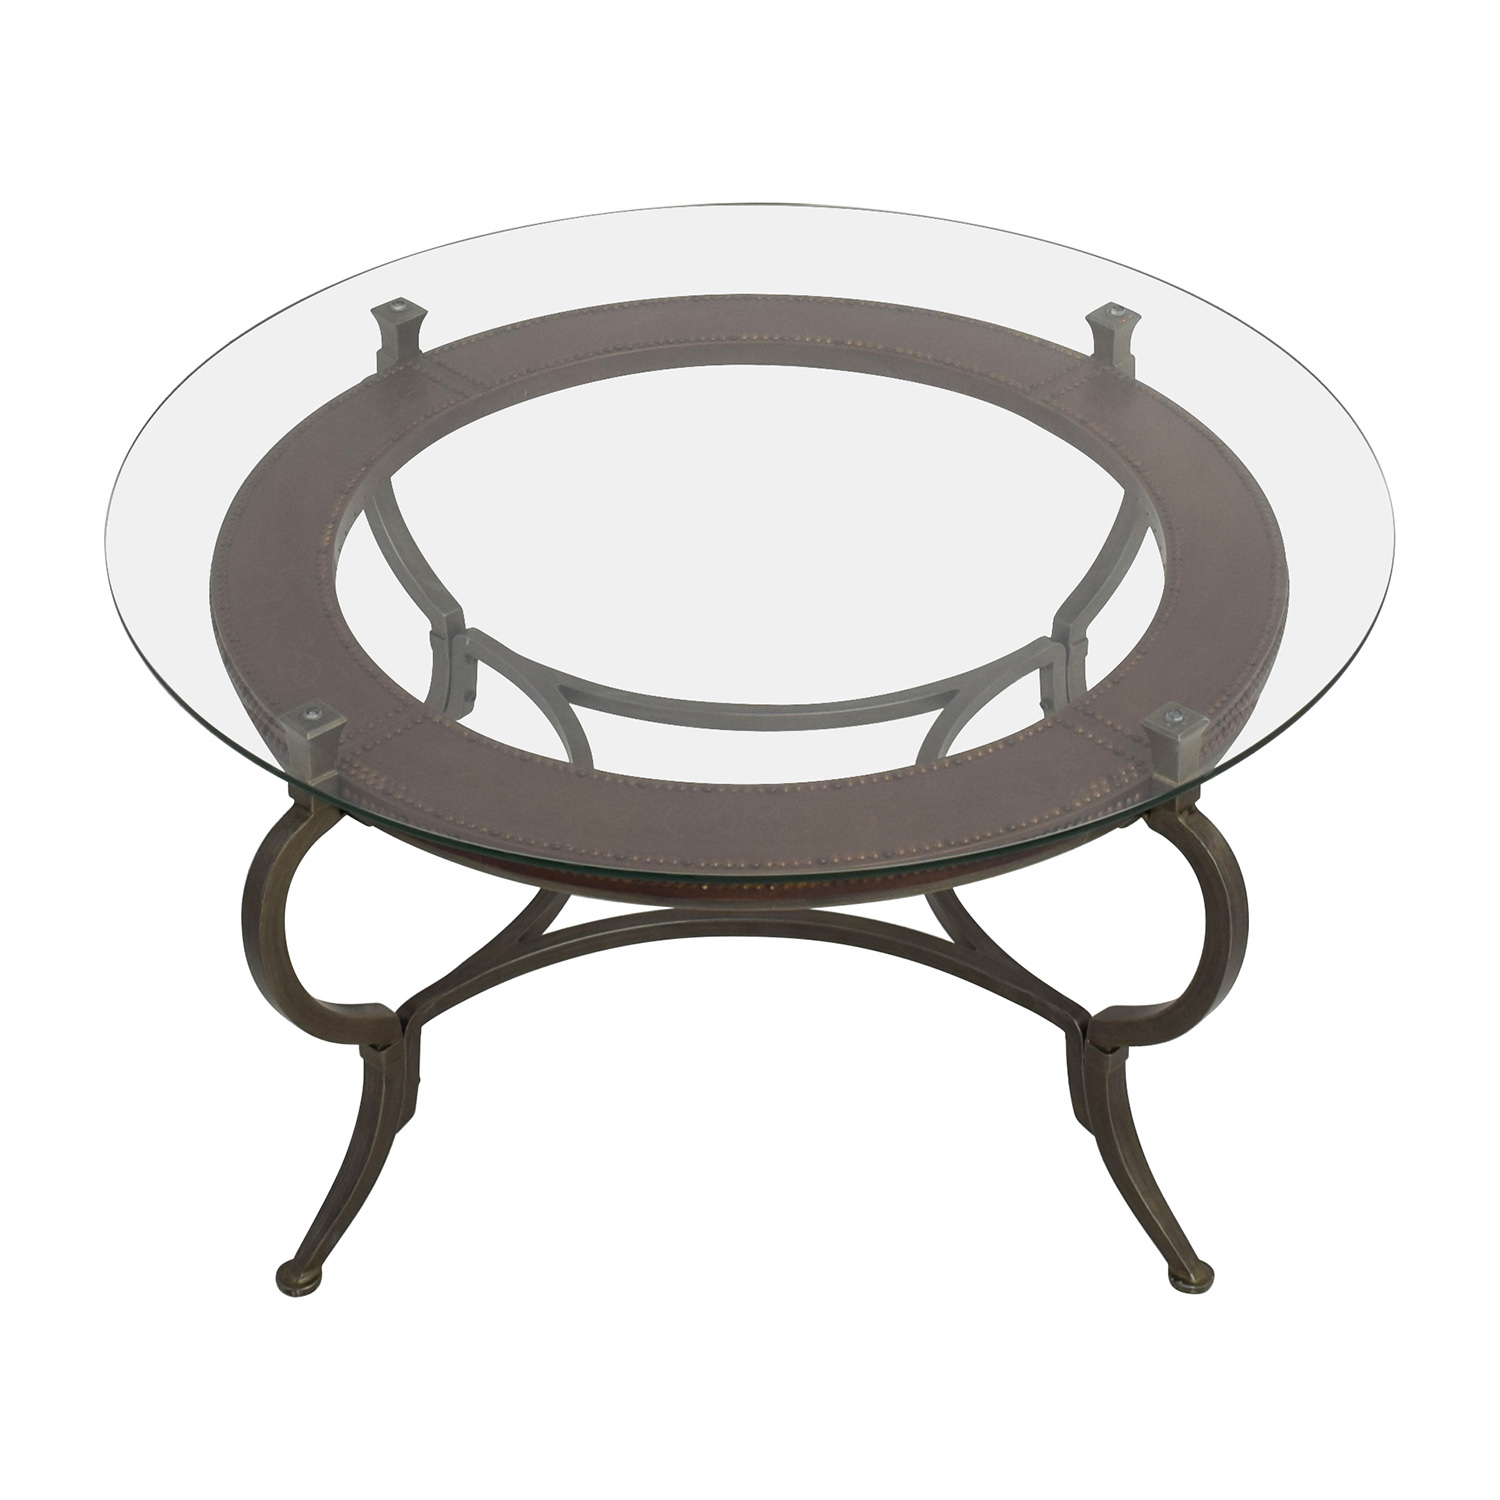 Macys Round Metal and Glass Cocktail Table / Coffee Tables